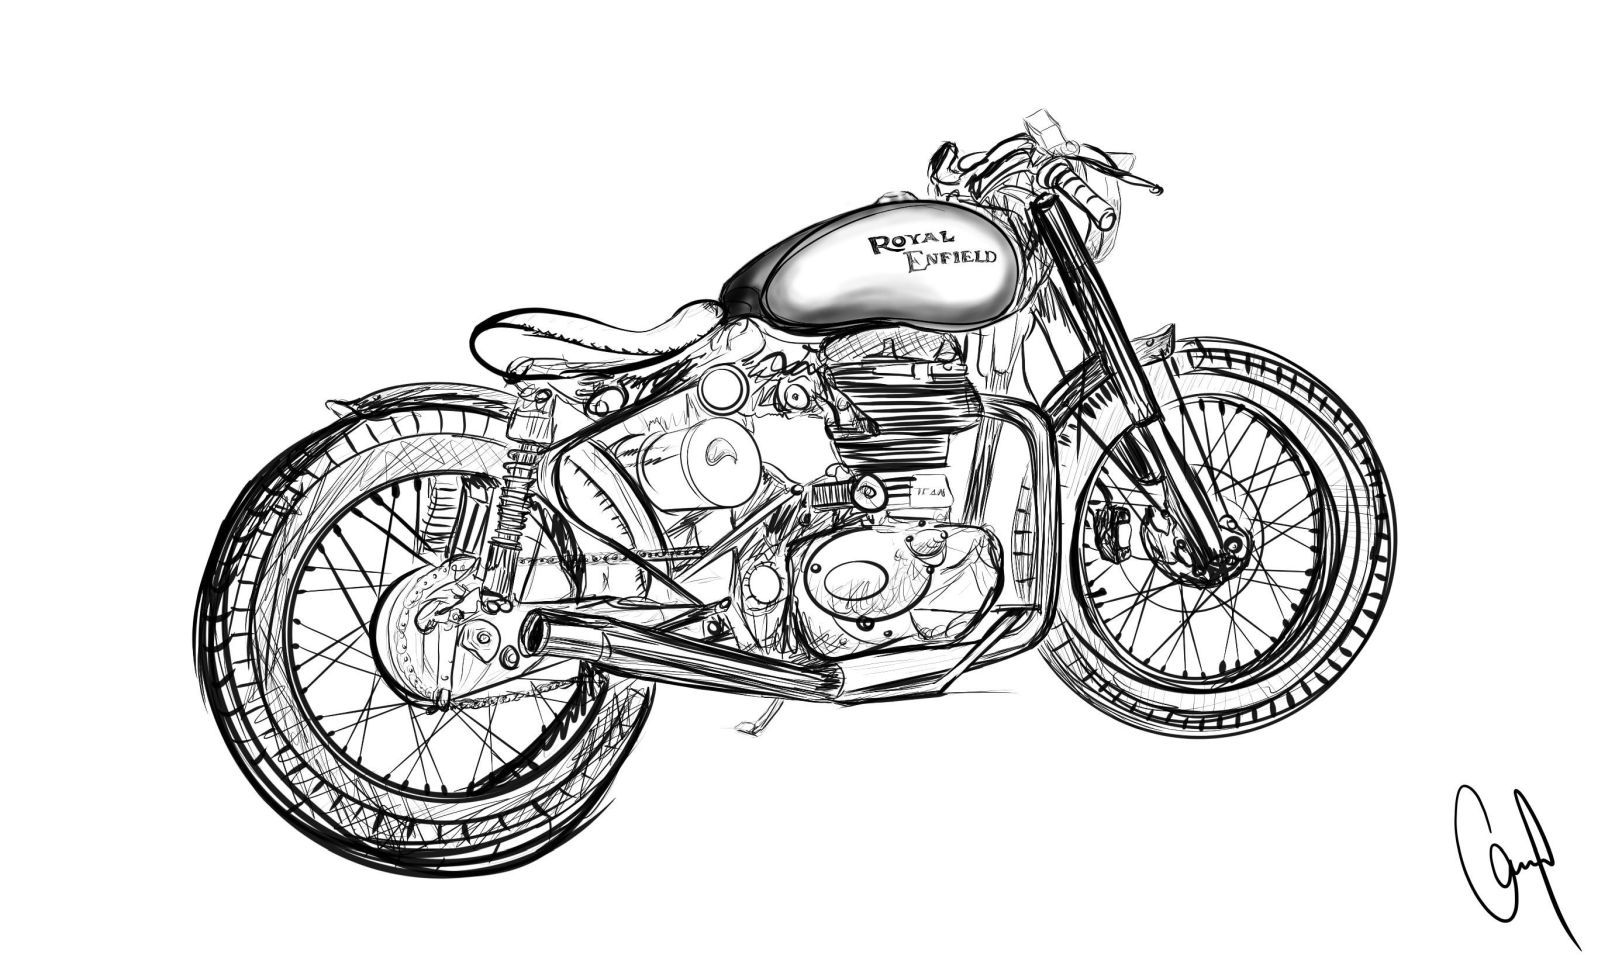 9 royal enfield design contest bobber pencil drawing by giancarlo roselli